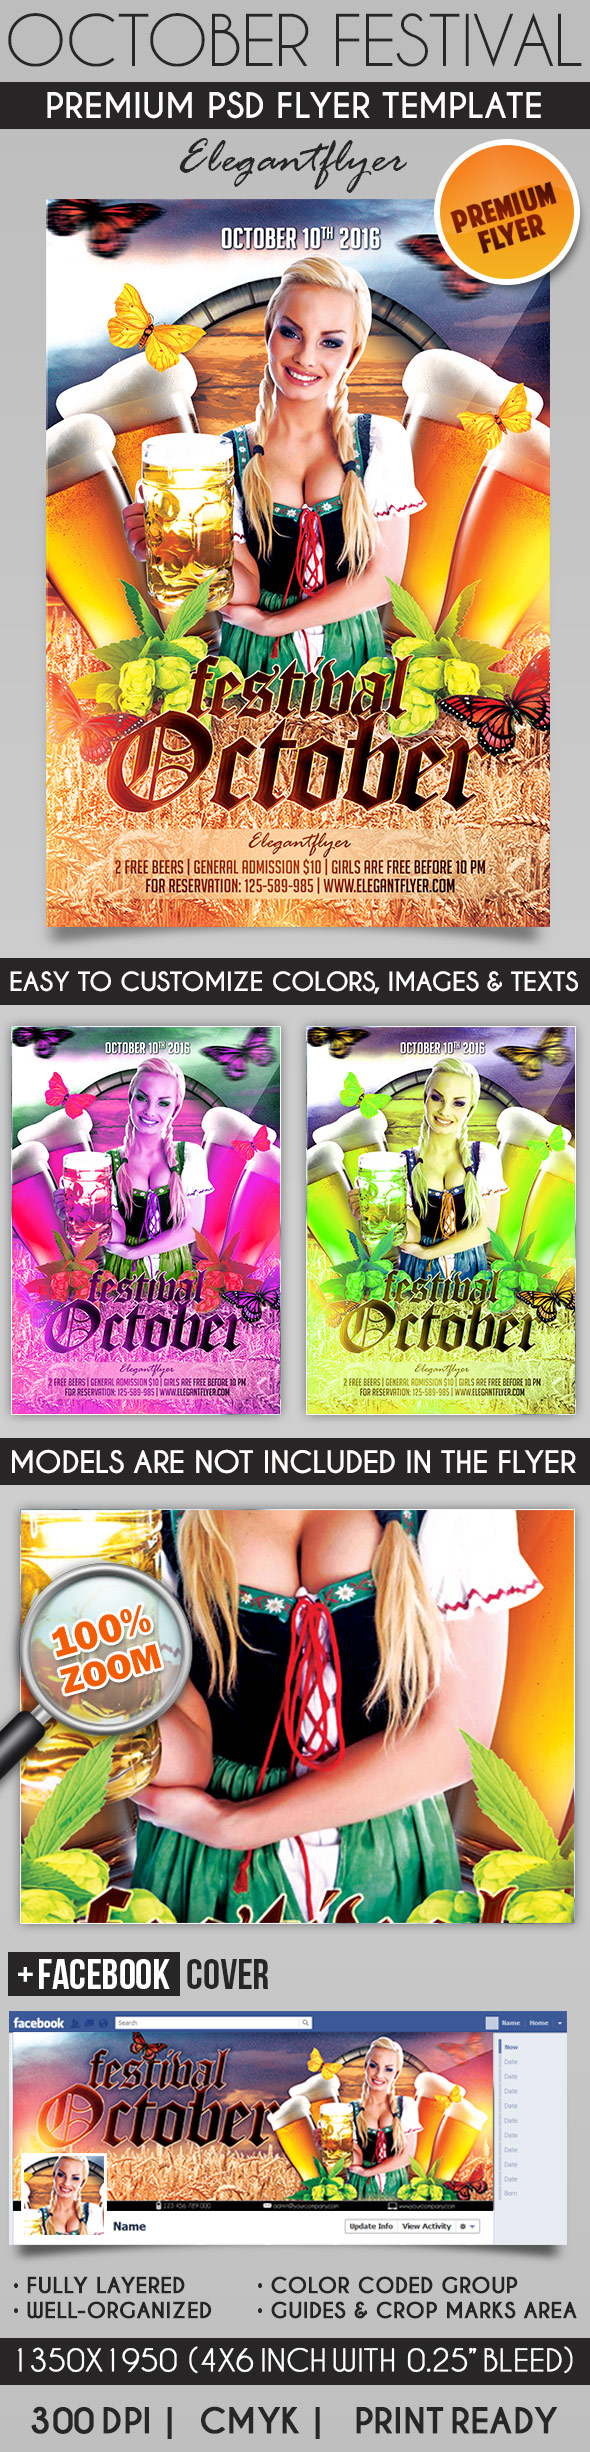 Oktober Festival – Flyer PSD Template + Facebook Cover